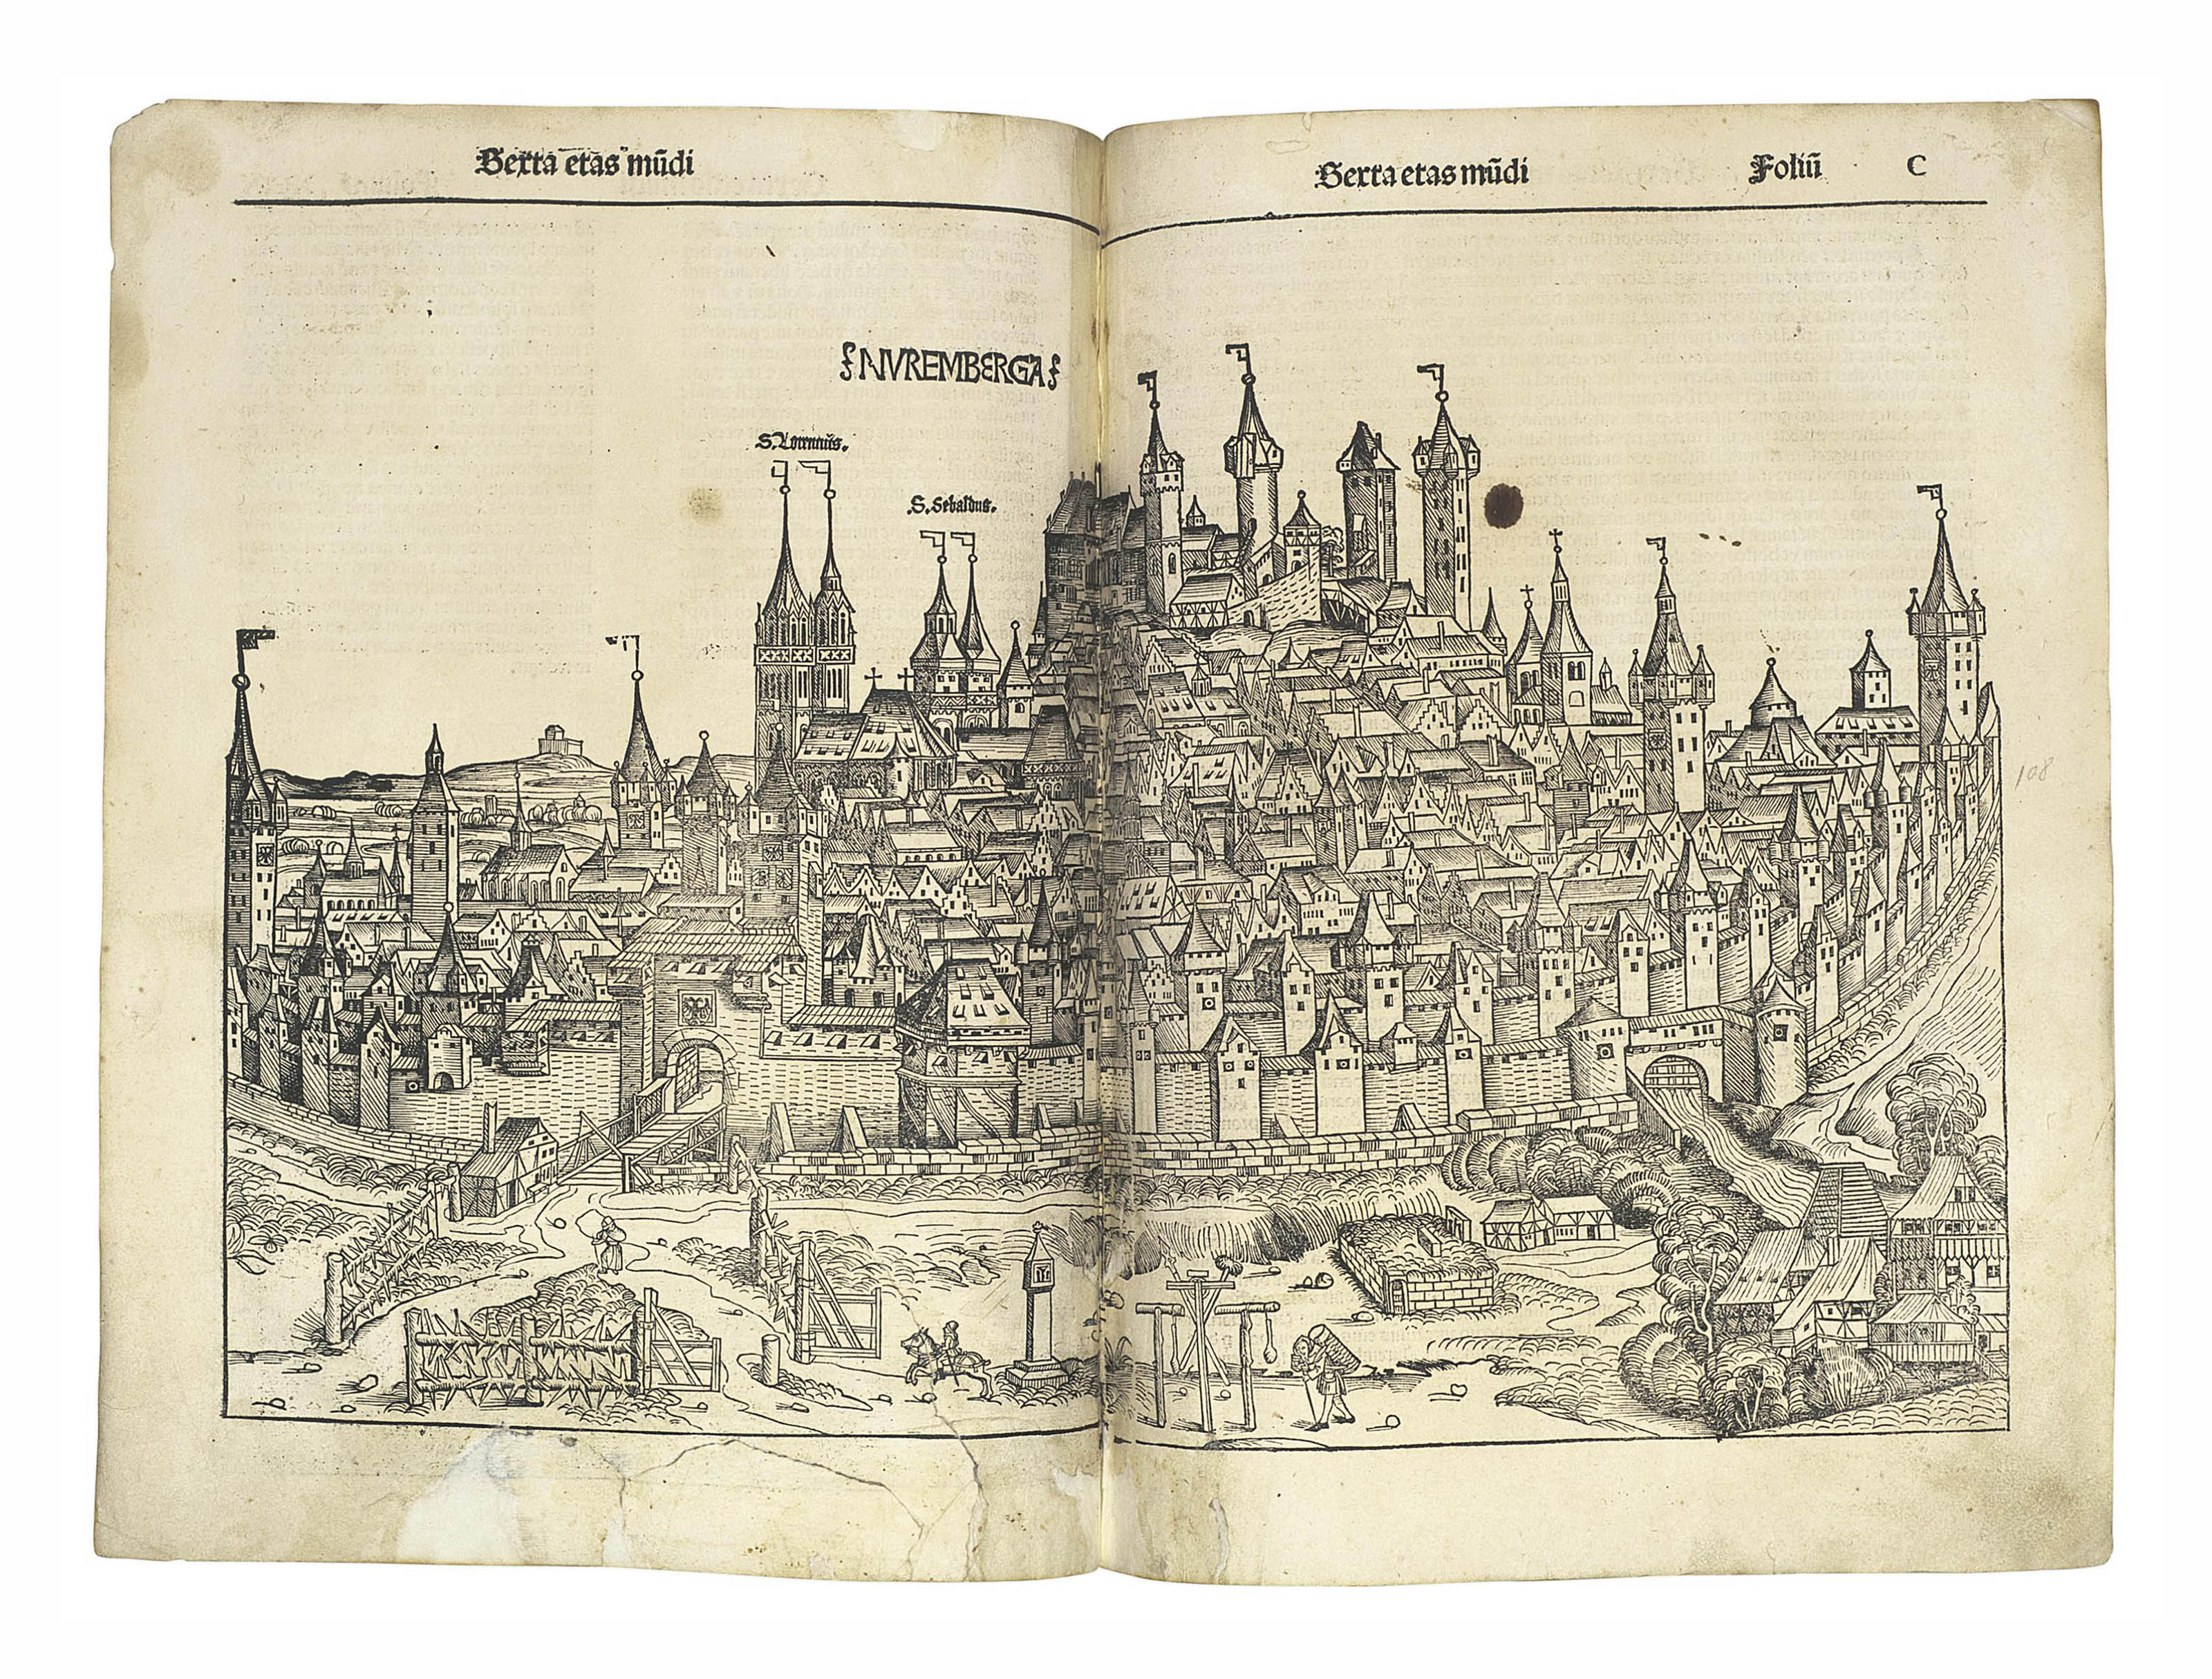 SCHEDEL, Hartmann (1440-1514). Liber chronicarum. Nuremberg: Anton Koberger, 12 July 1493. Imperial 2° (451 x 308mm). 300 leaves (of 328; missing leaves include title and world map); with 2 (of 3) leaves blank but for printed headline. Fo. 123 misbound after 127. Profusely illustrated with woodcuts by Wolgemut and Pleydenwurff and their workshop, including the young Albrecht Dürer. (Some headlines shaved, occasional light staining, small wormholes, repaired tears touching text in several leaves, a few index leaves defective, some leaves probably supplied.) Modern vellum. Provenance: Reformed Franciscans of Gallipoli (17th-century inscription on opening woodcut), a few other inscriptions.